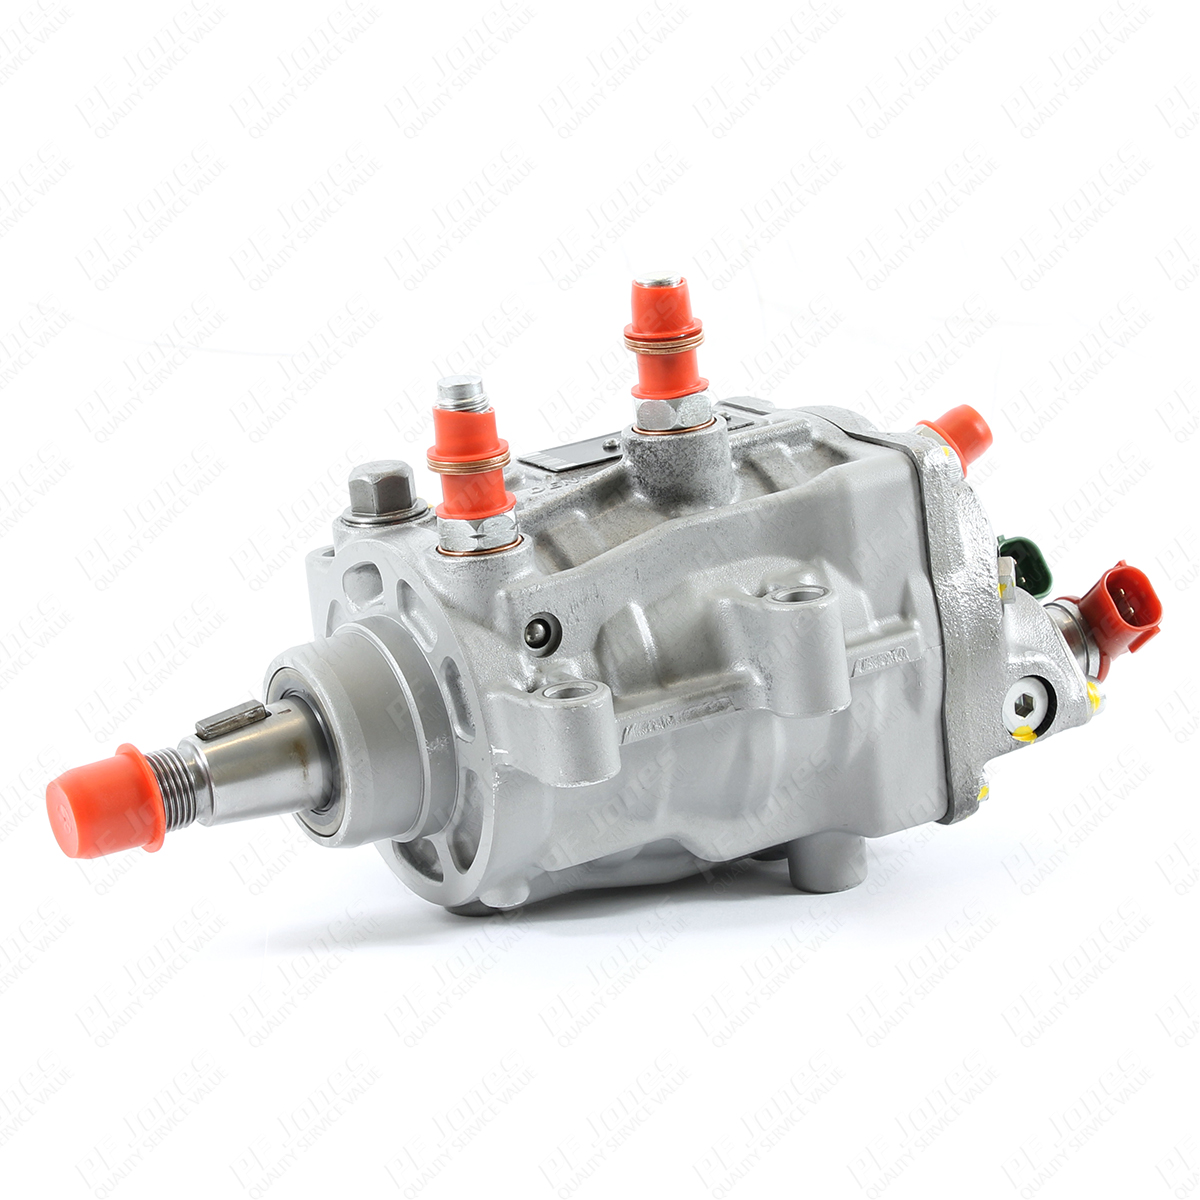 Toyota Corolla 2006 Onwards New Denso Diesel Fuel Pump Dcrp301580 2001 Engine